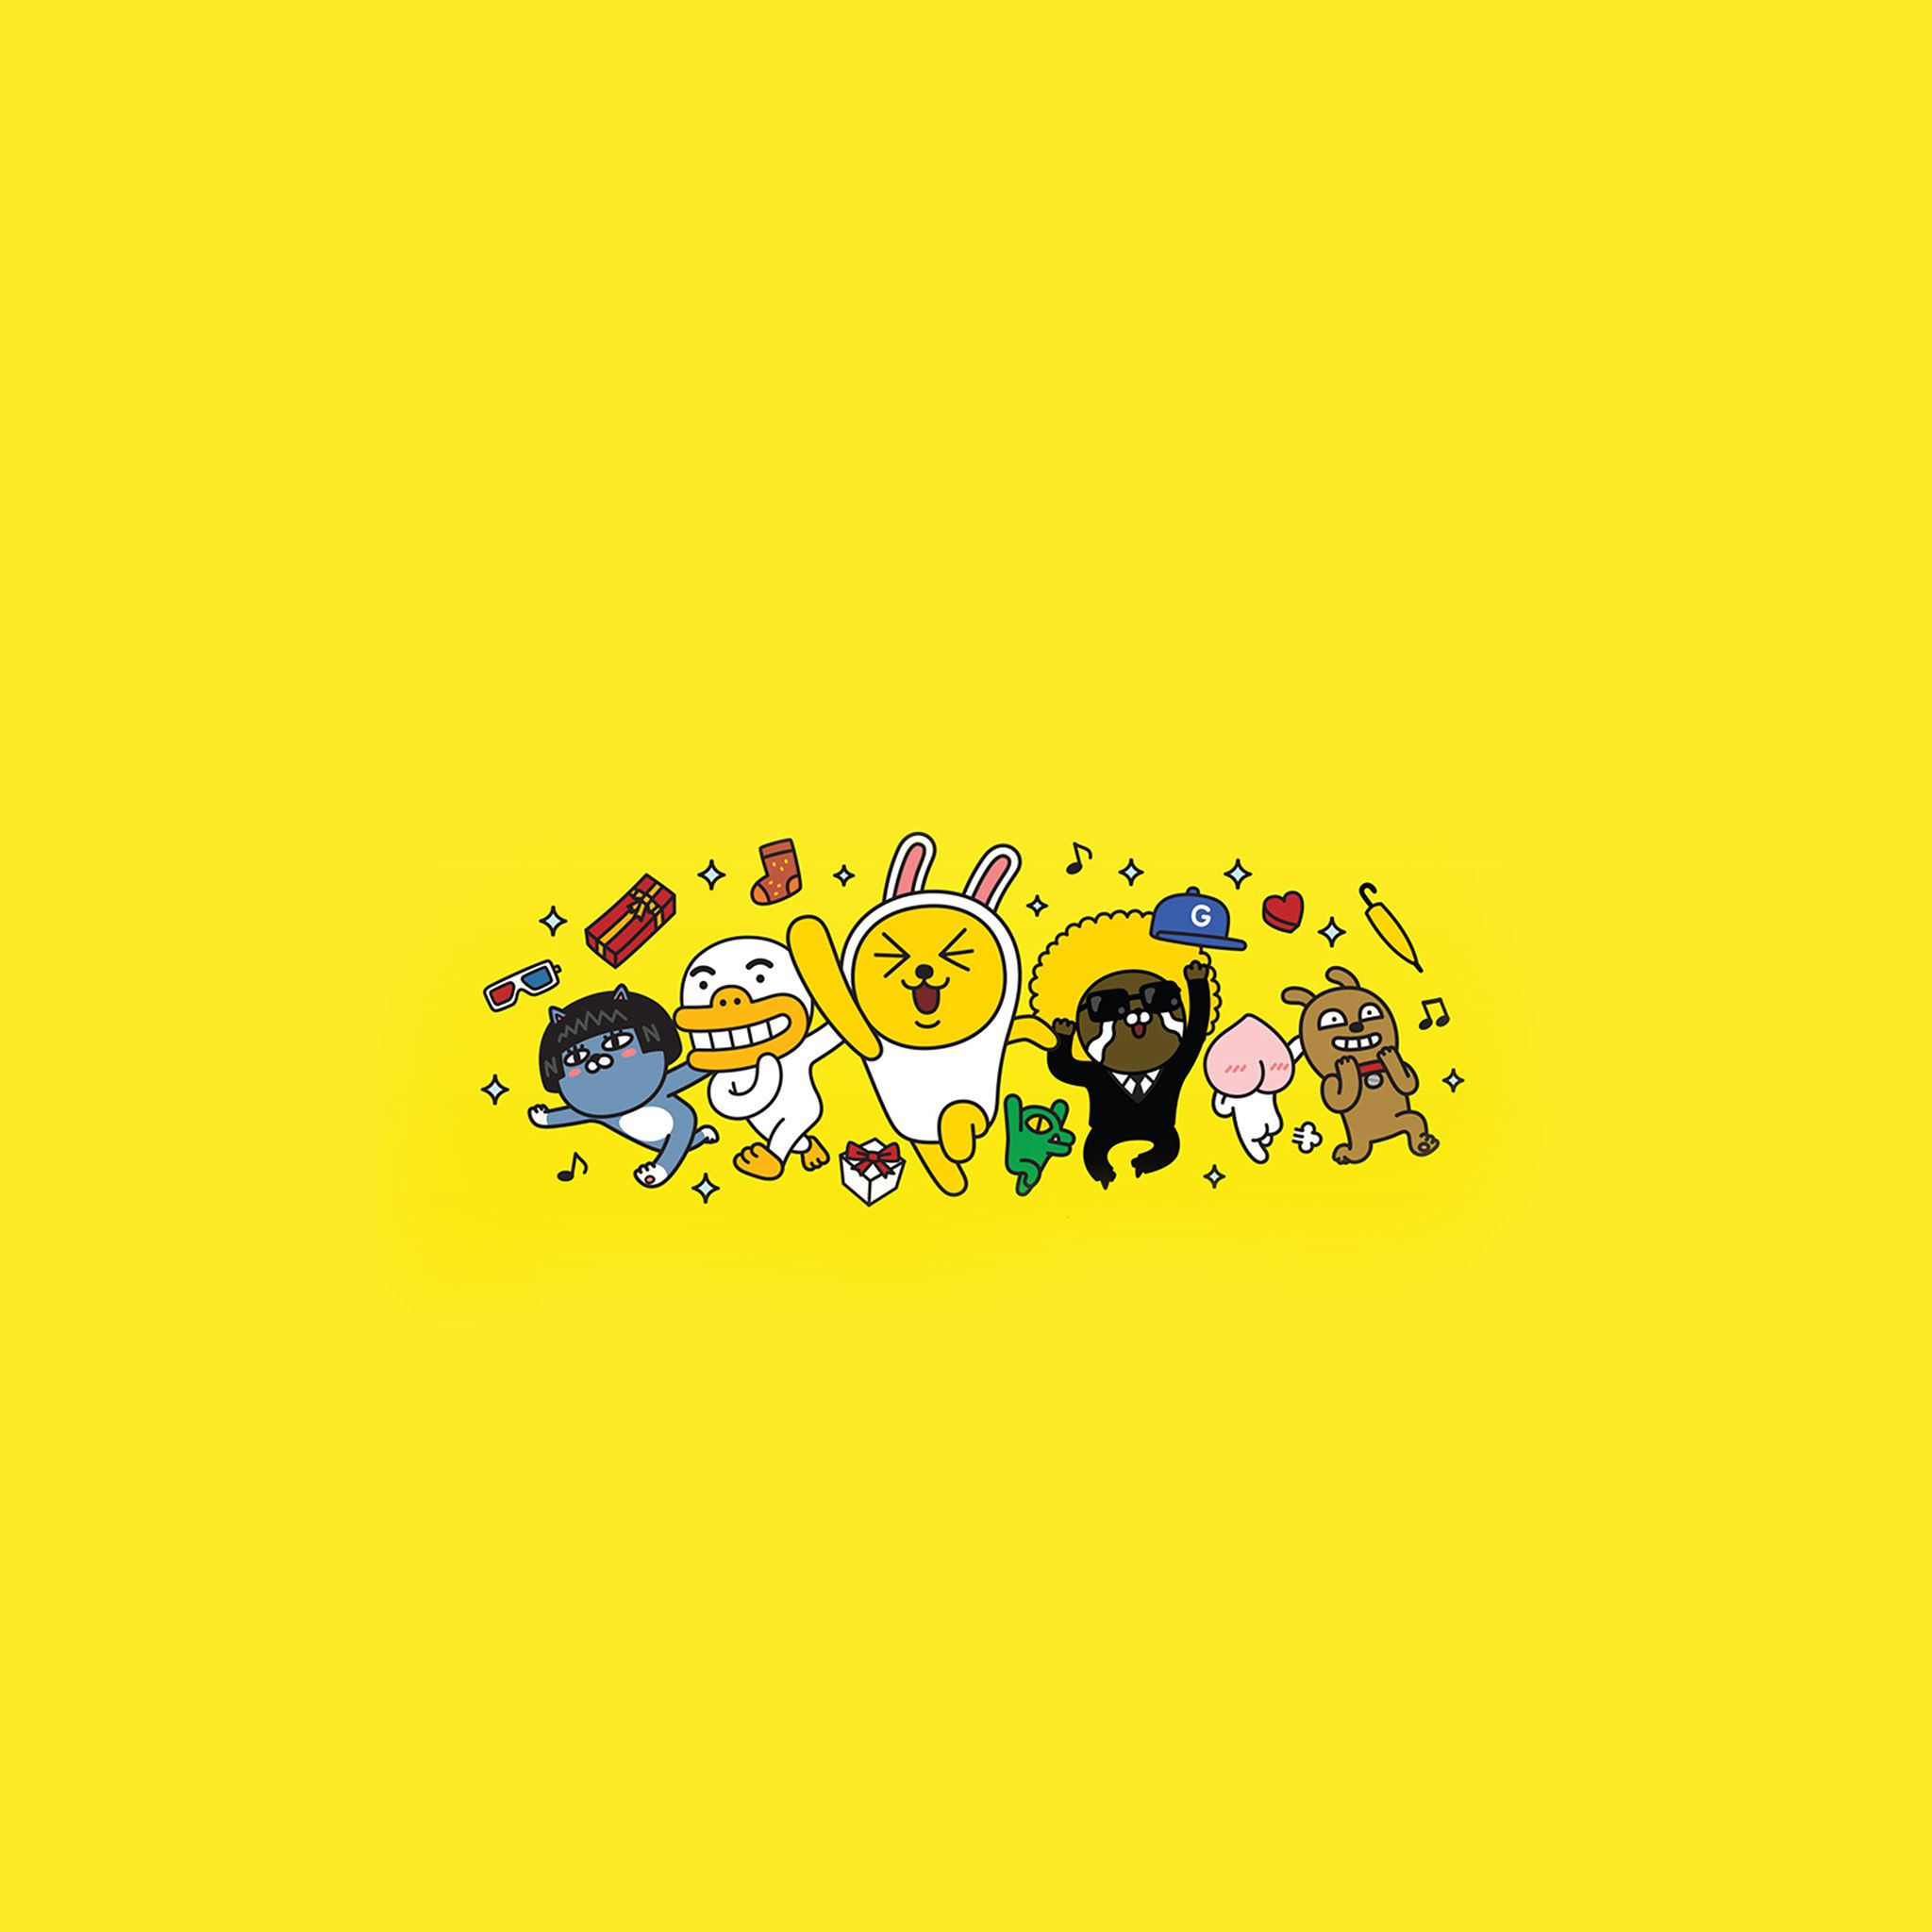 Aesthetic Wallpapers For Laptop Yellow